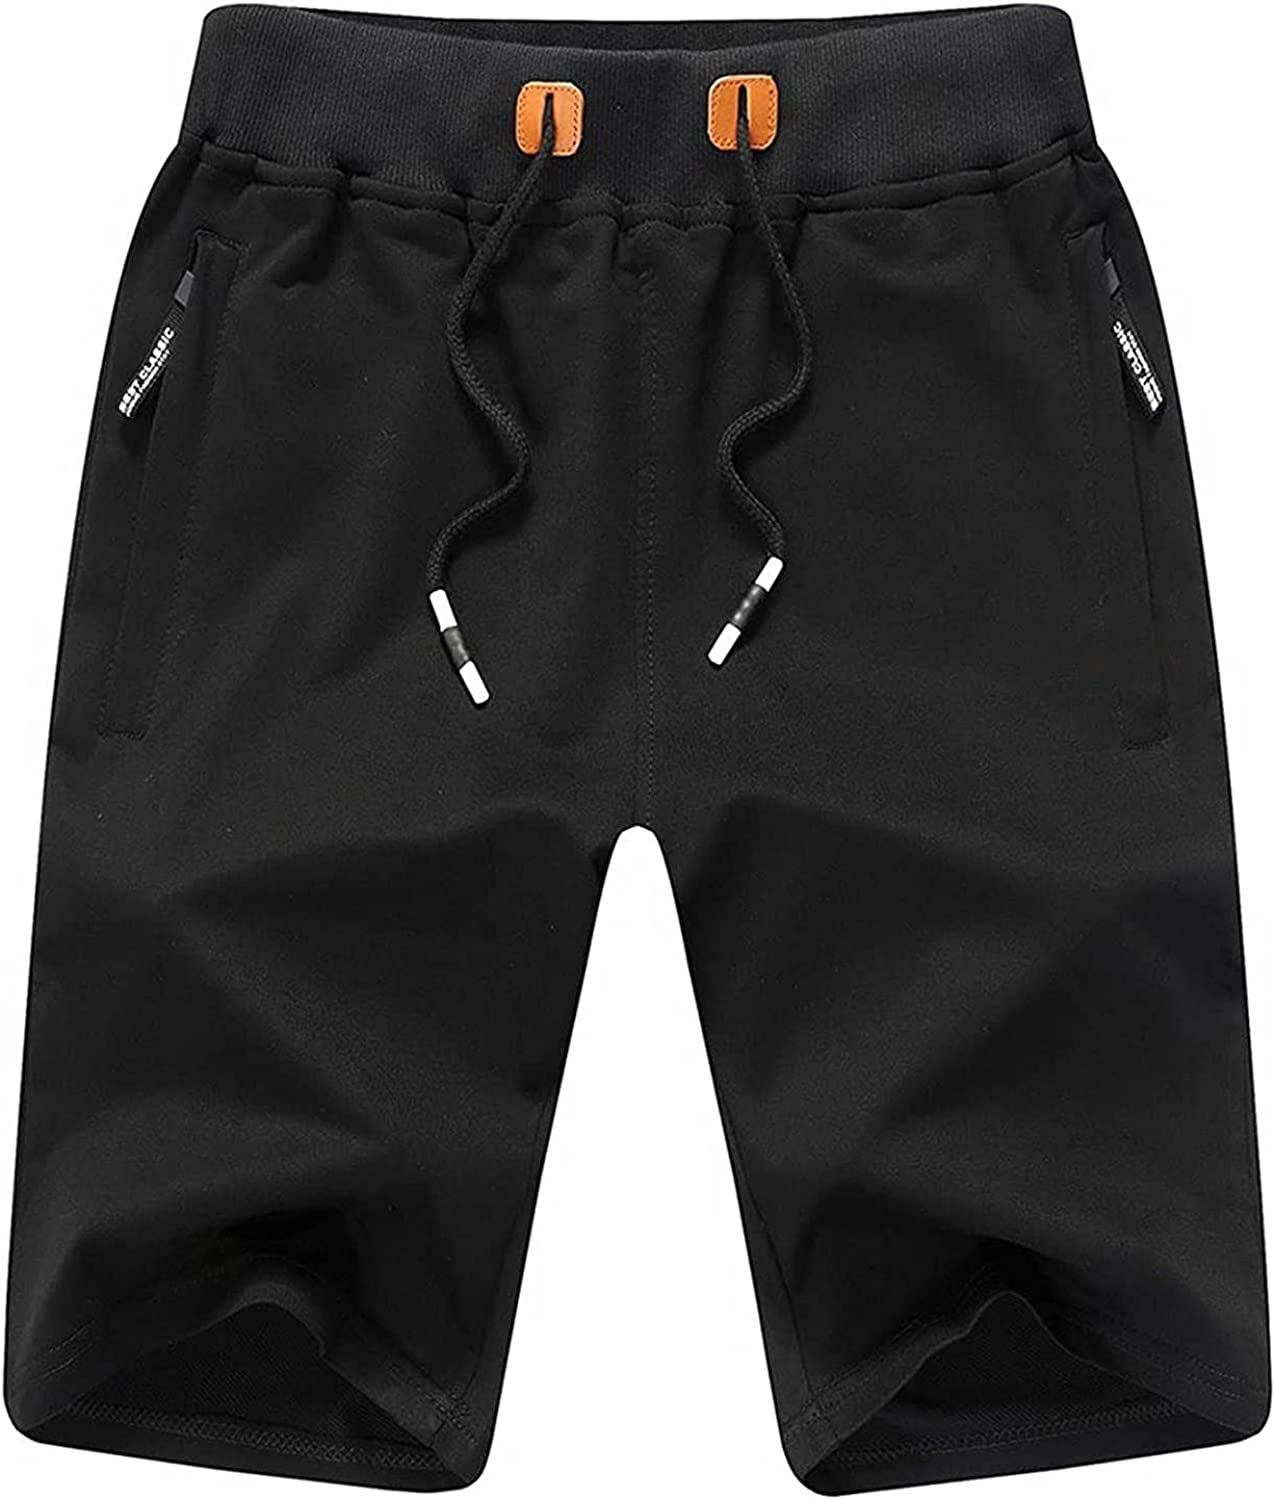 Men's Summer Sports Shorts Lace Up Athletic Shorts Casual Versatile Loose Sweat Pants with Zipper Pockets - Limsea